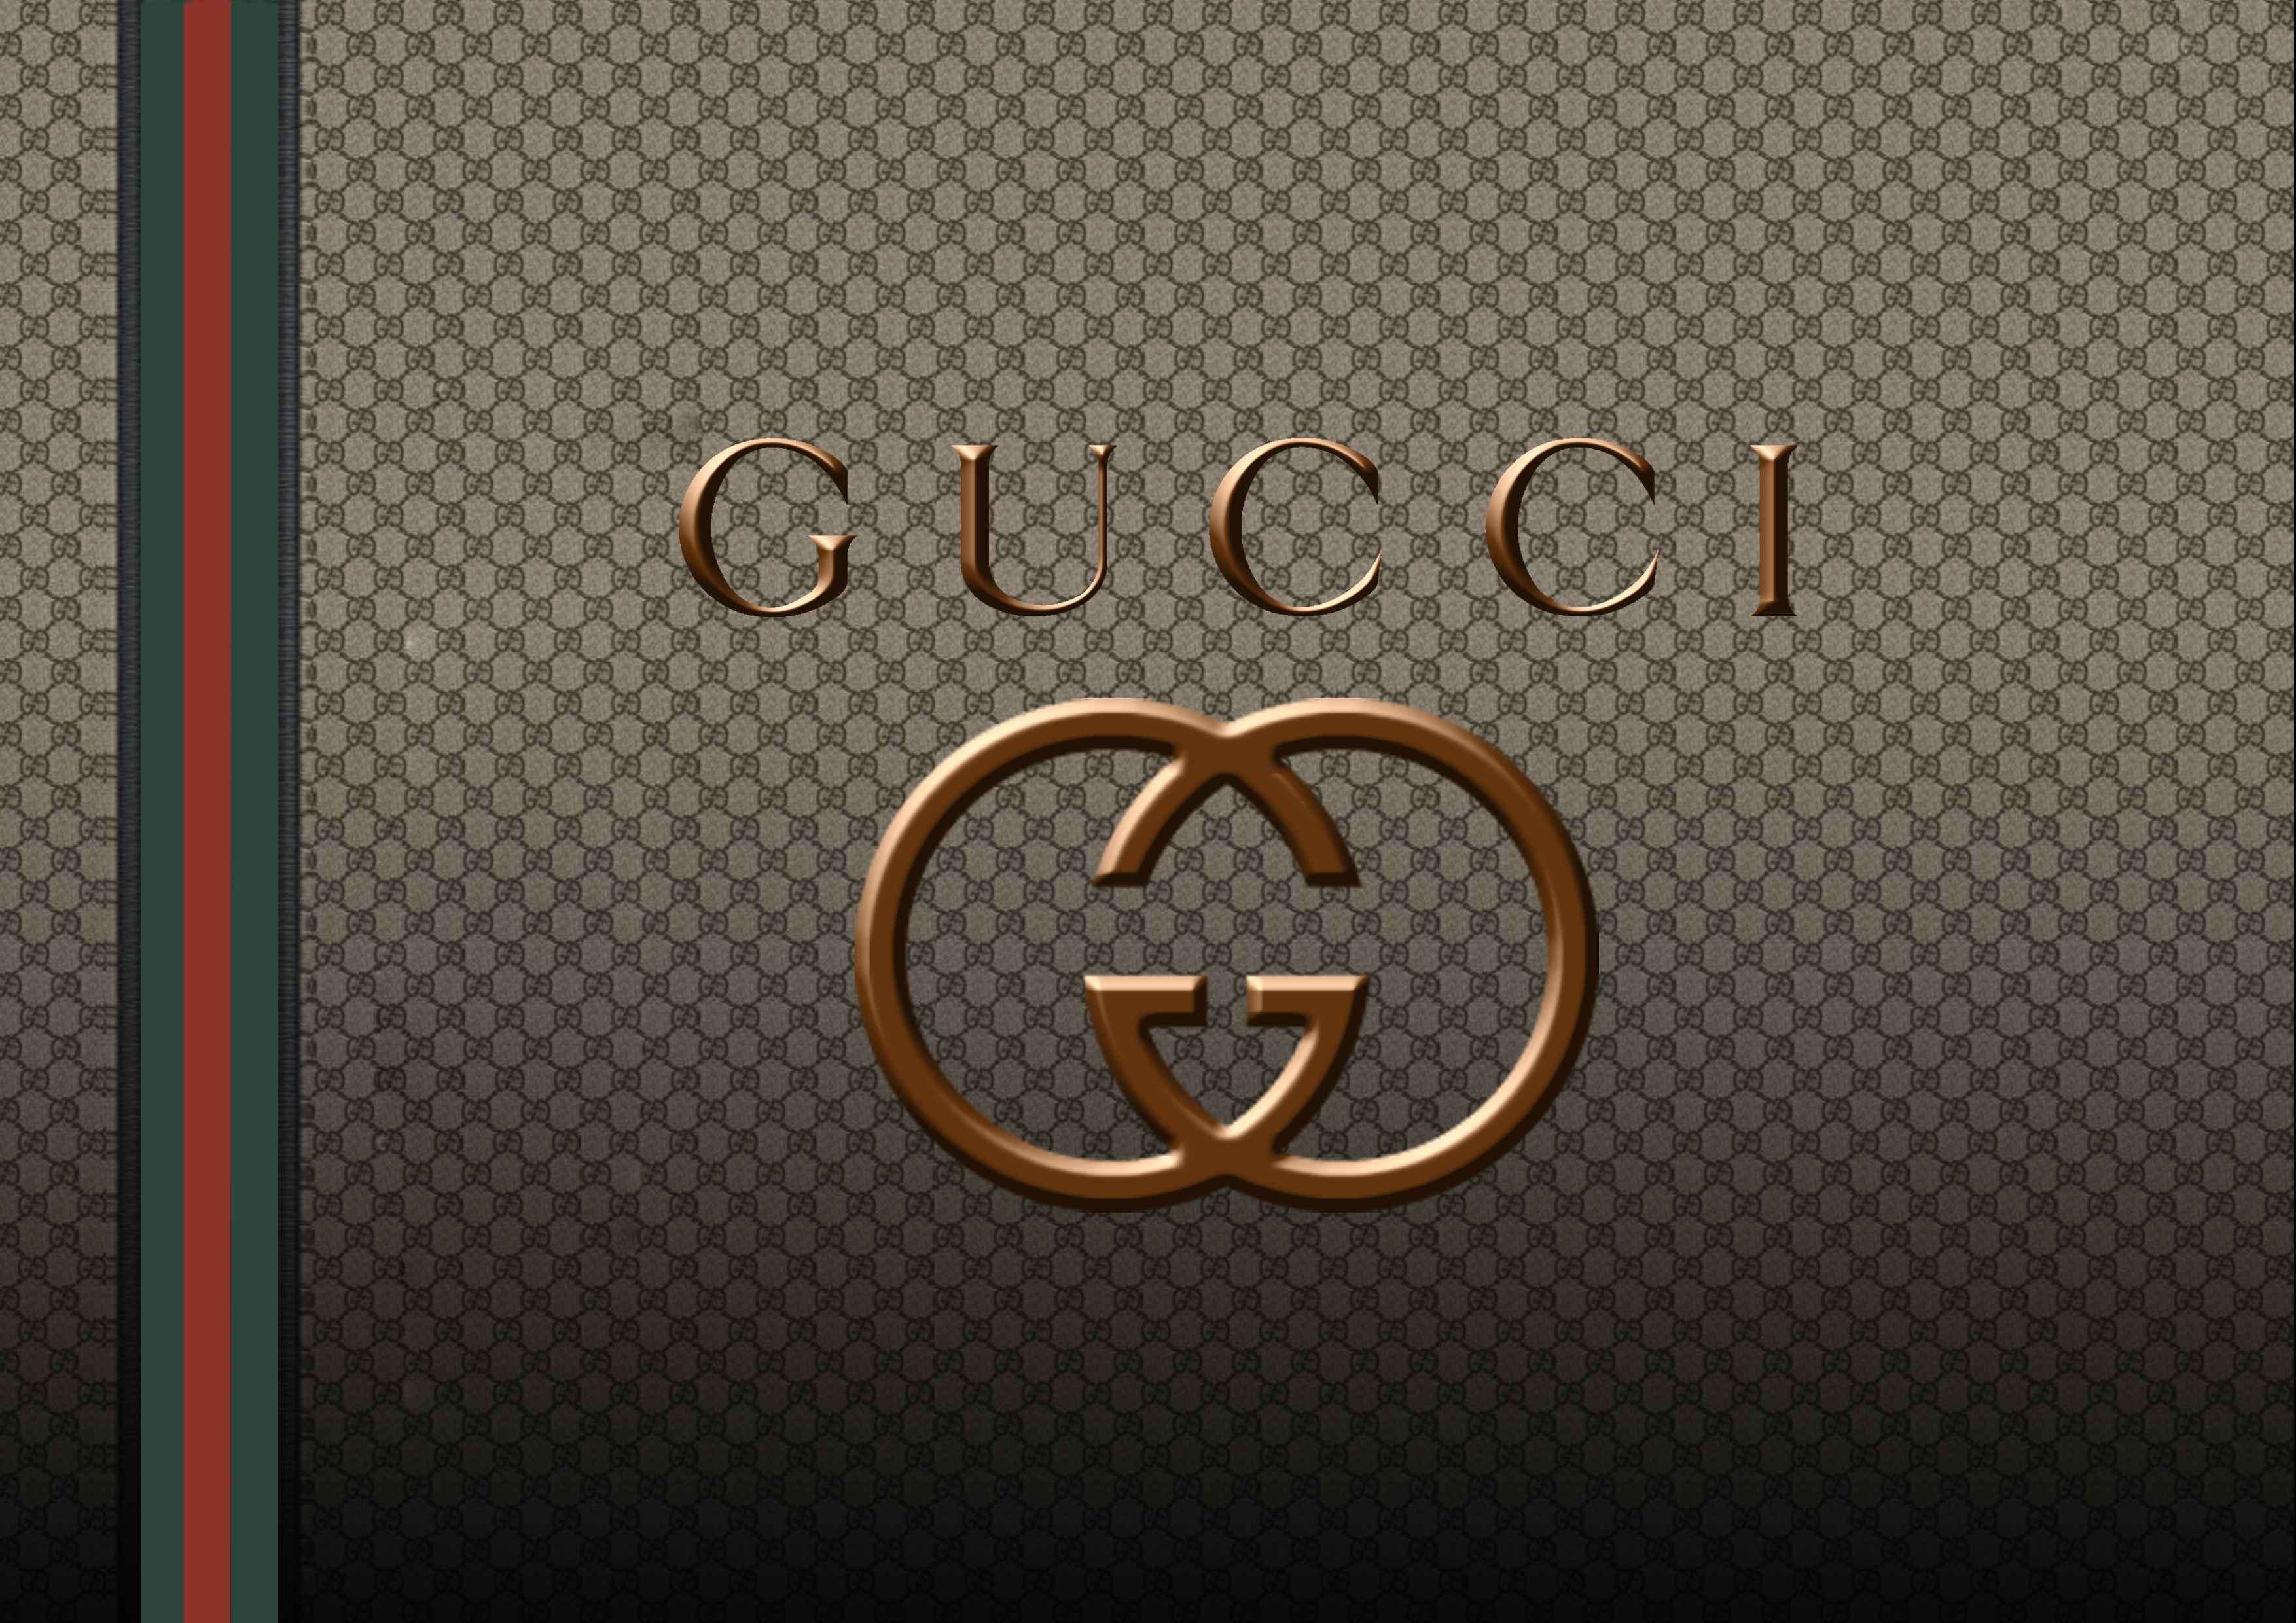 Download from Gucci wallpapers and images wallpapers pictures 3508x2480